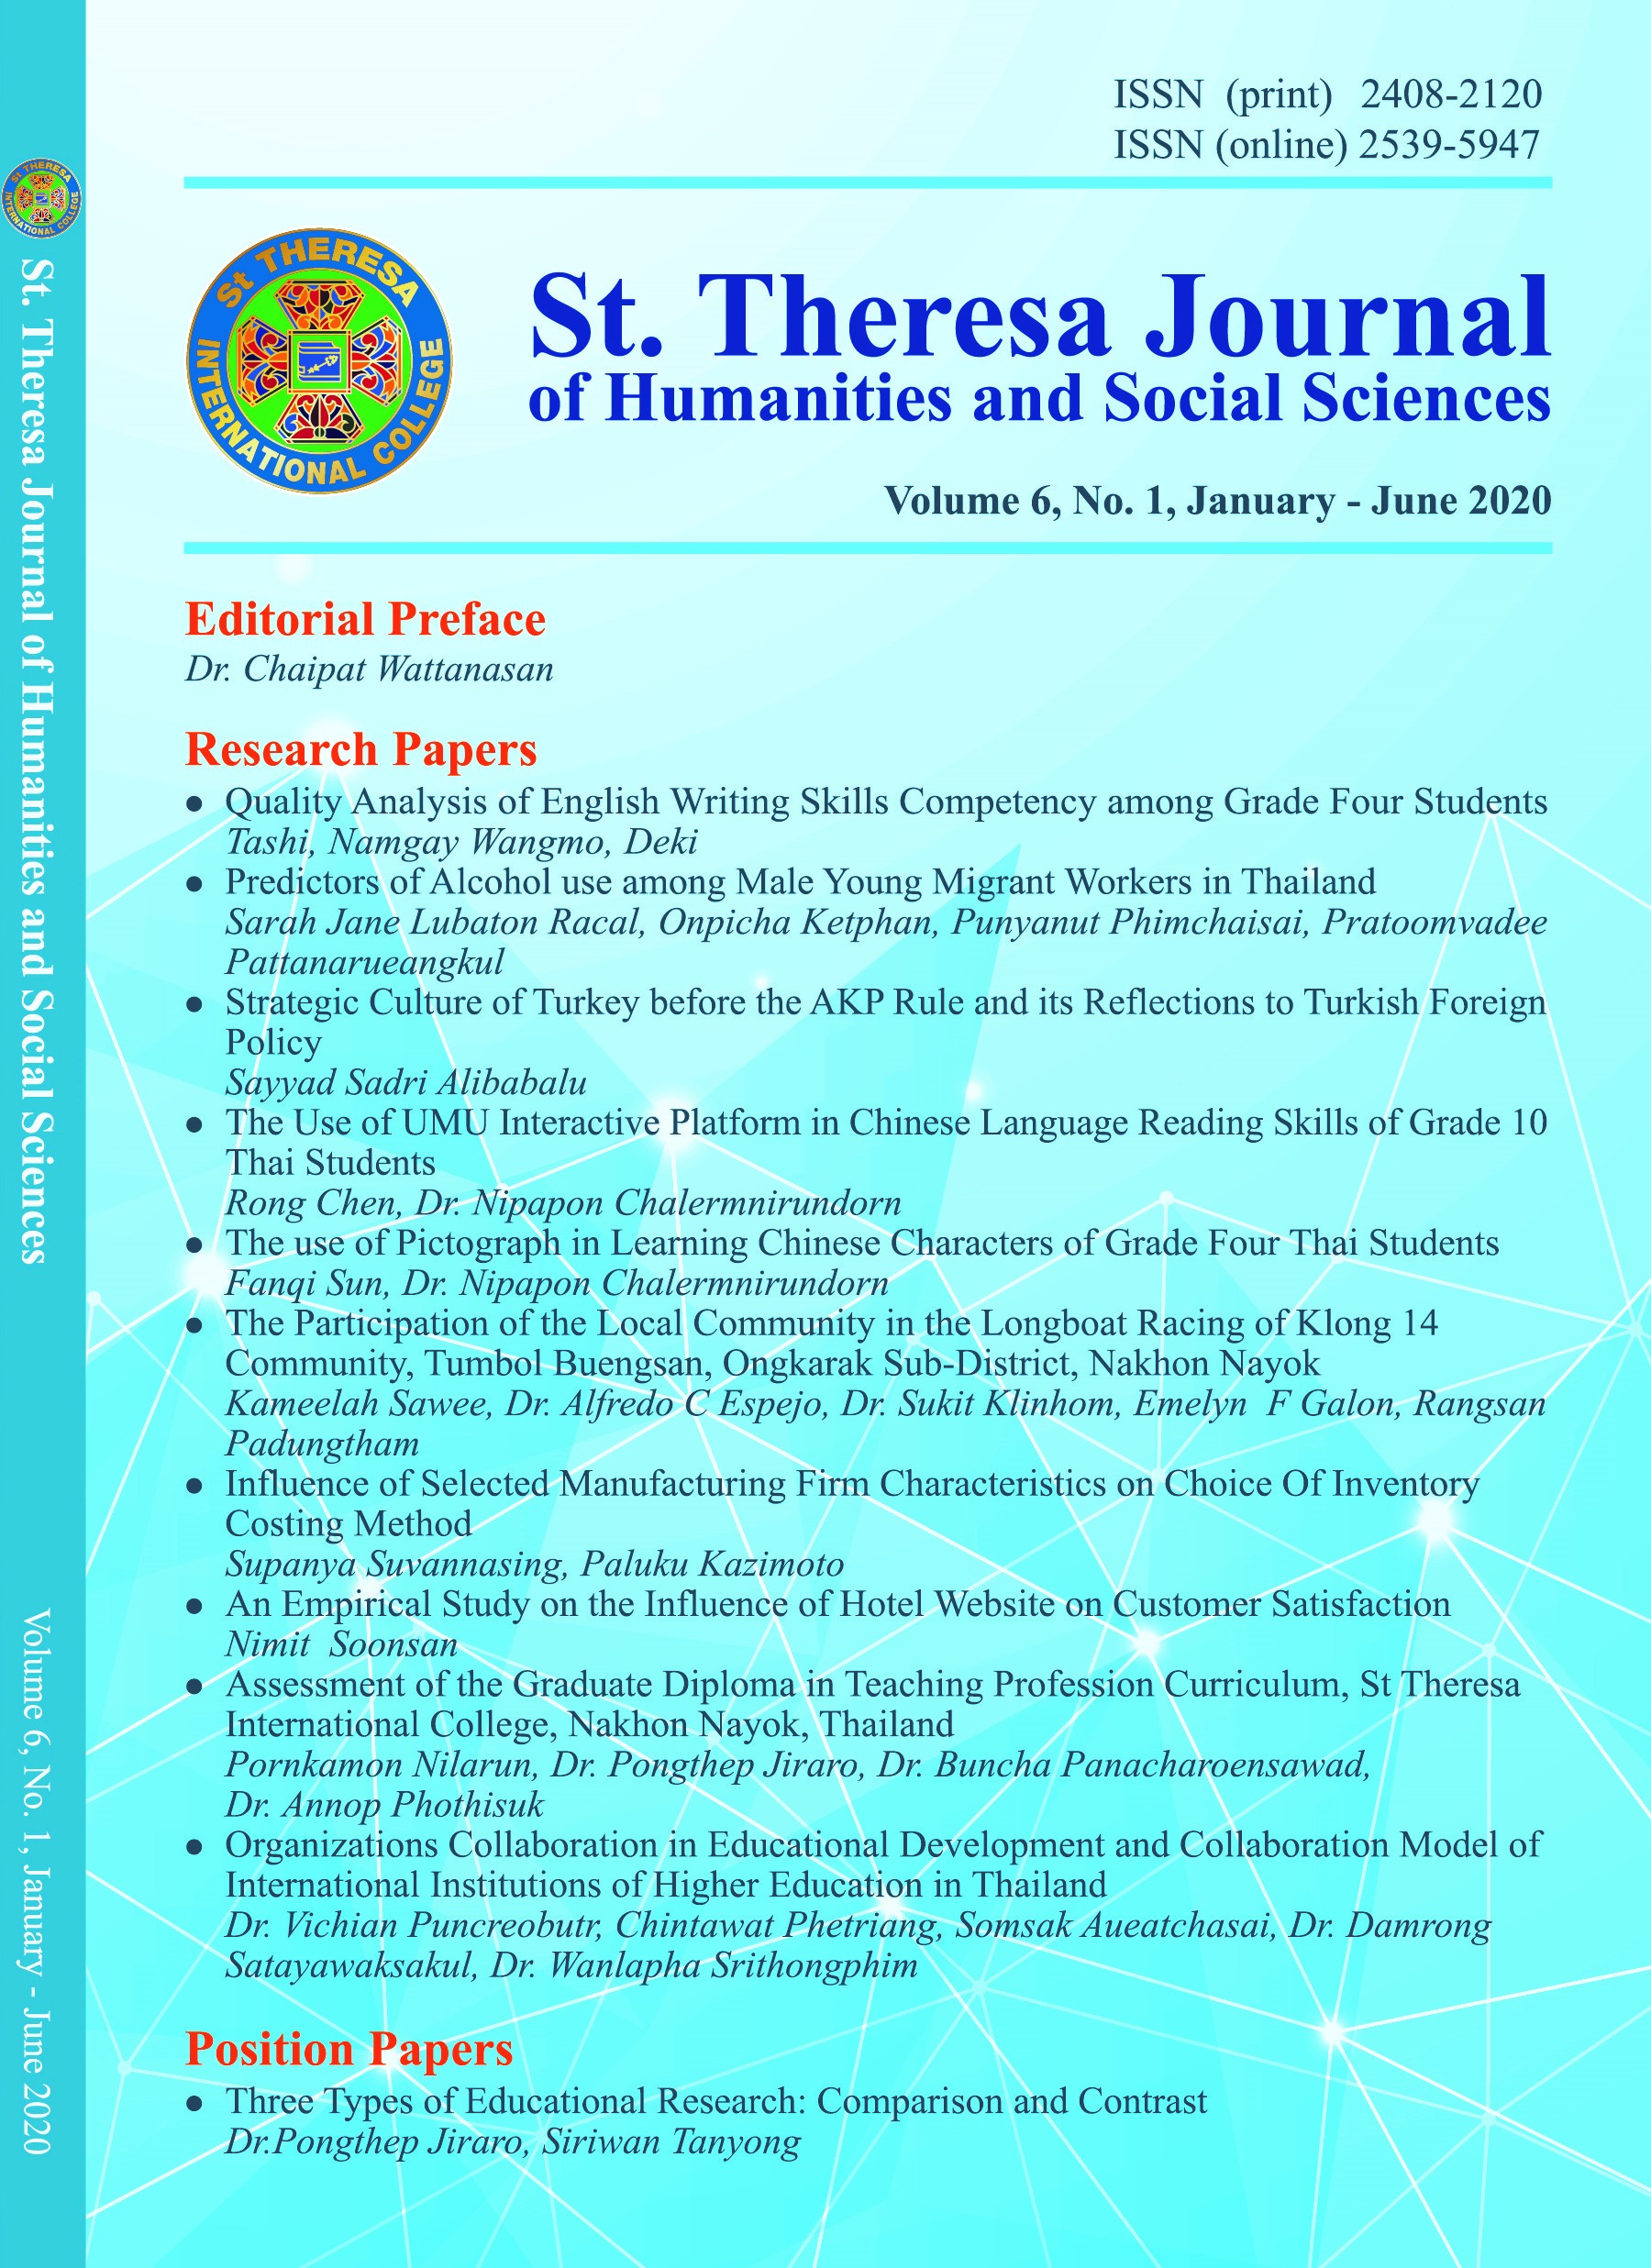 View Vol. 6 No. 1 (2020): St. Theresa Journal of Humanities and Social Sciences